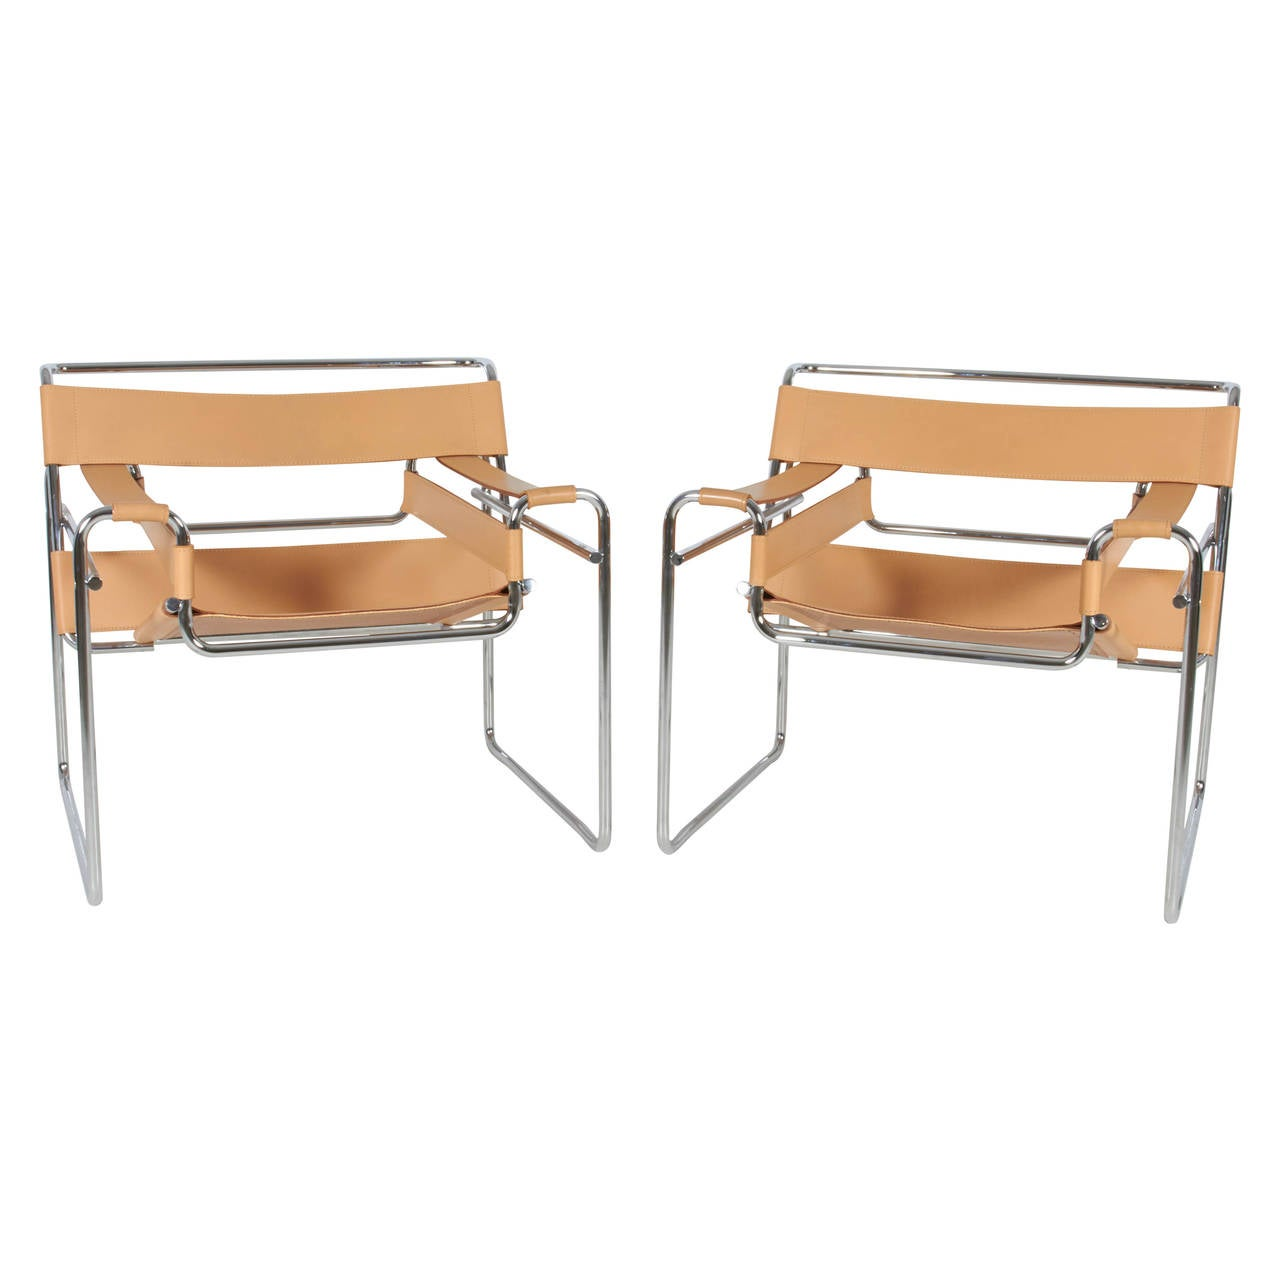 Vintage wassily chair by marcel breuer for knoll international for - Pair Of Wassily Chairs By Marcel Breuer At 1stdibs